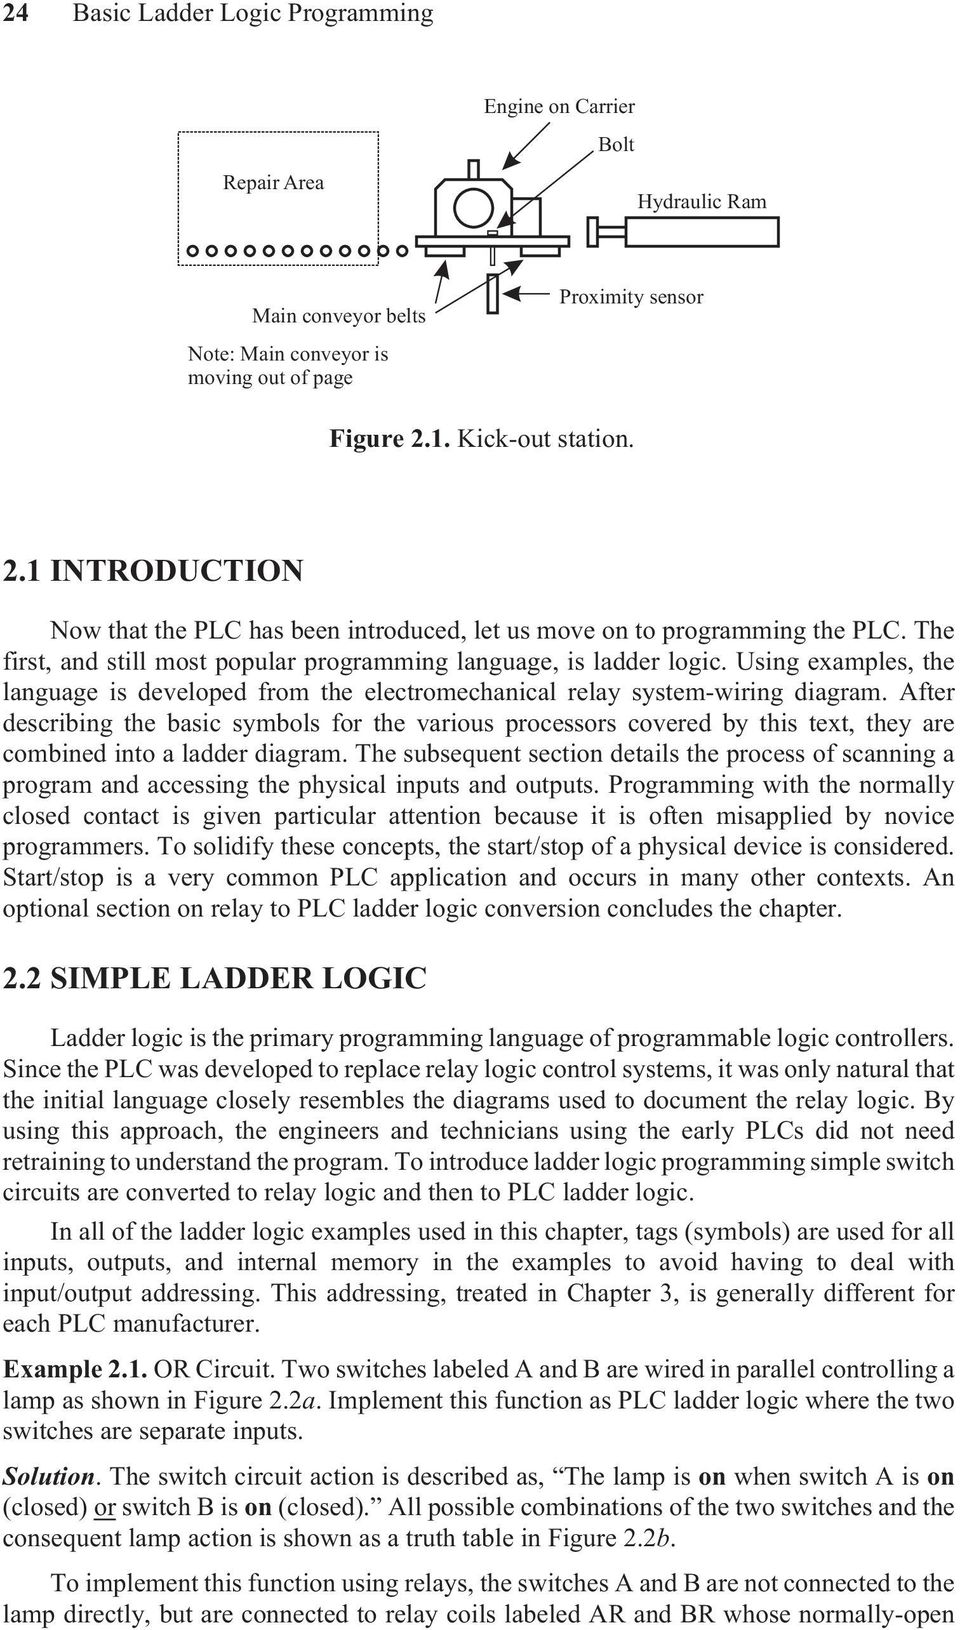 hight resolution of using examples the language is developed from the electromechanical relay system wiring diagram